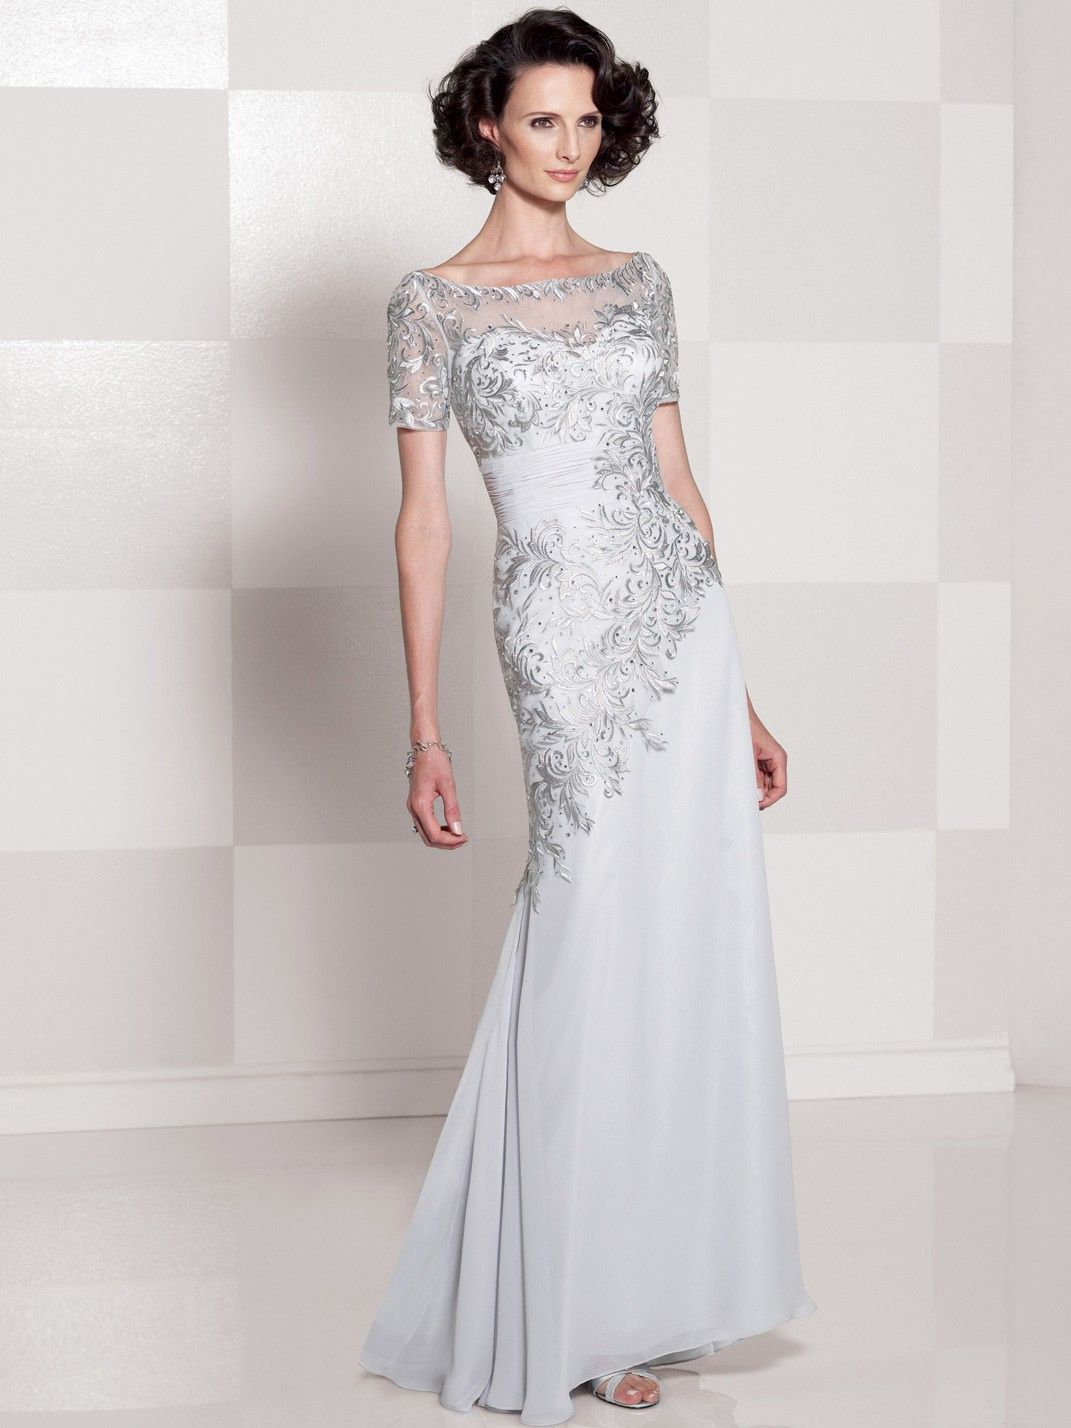 2nd dresses wedding with sleeves forecast dress in summer in 2019